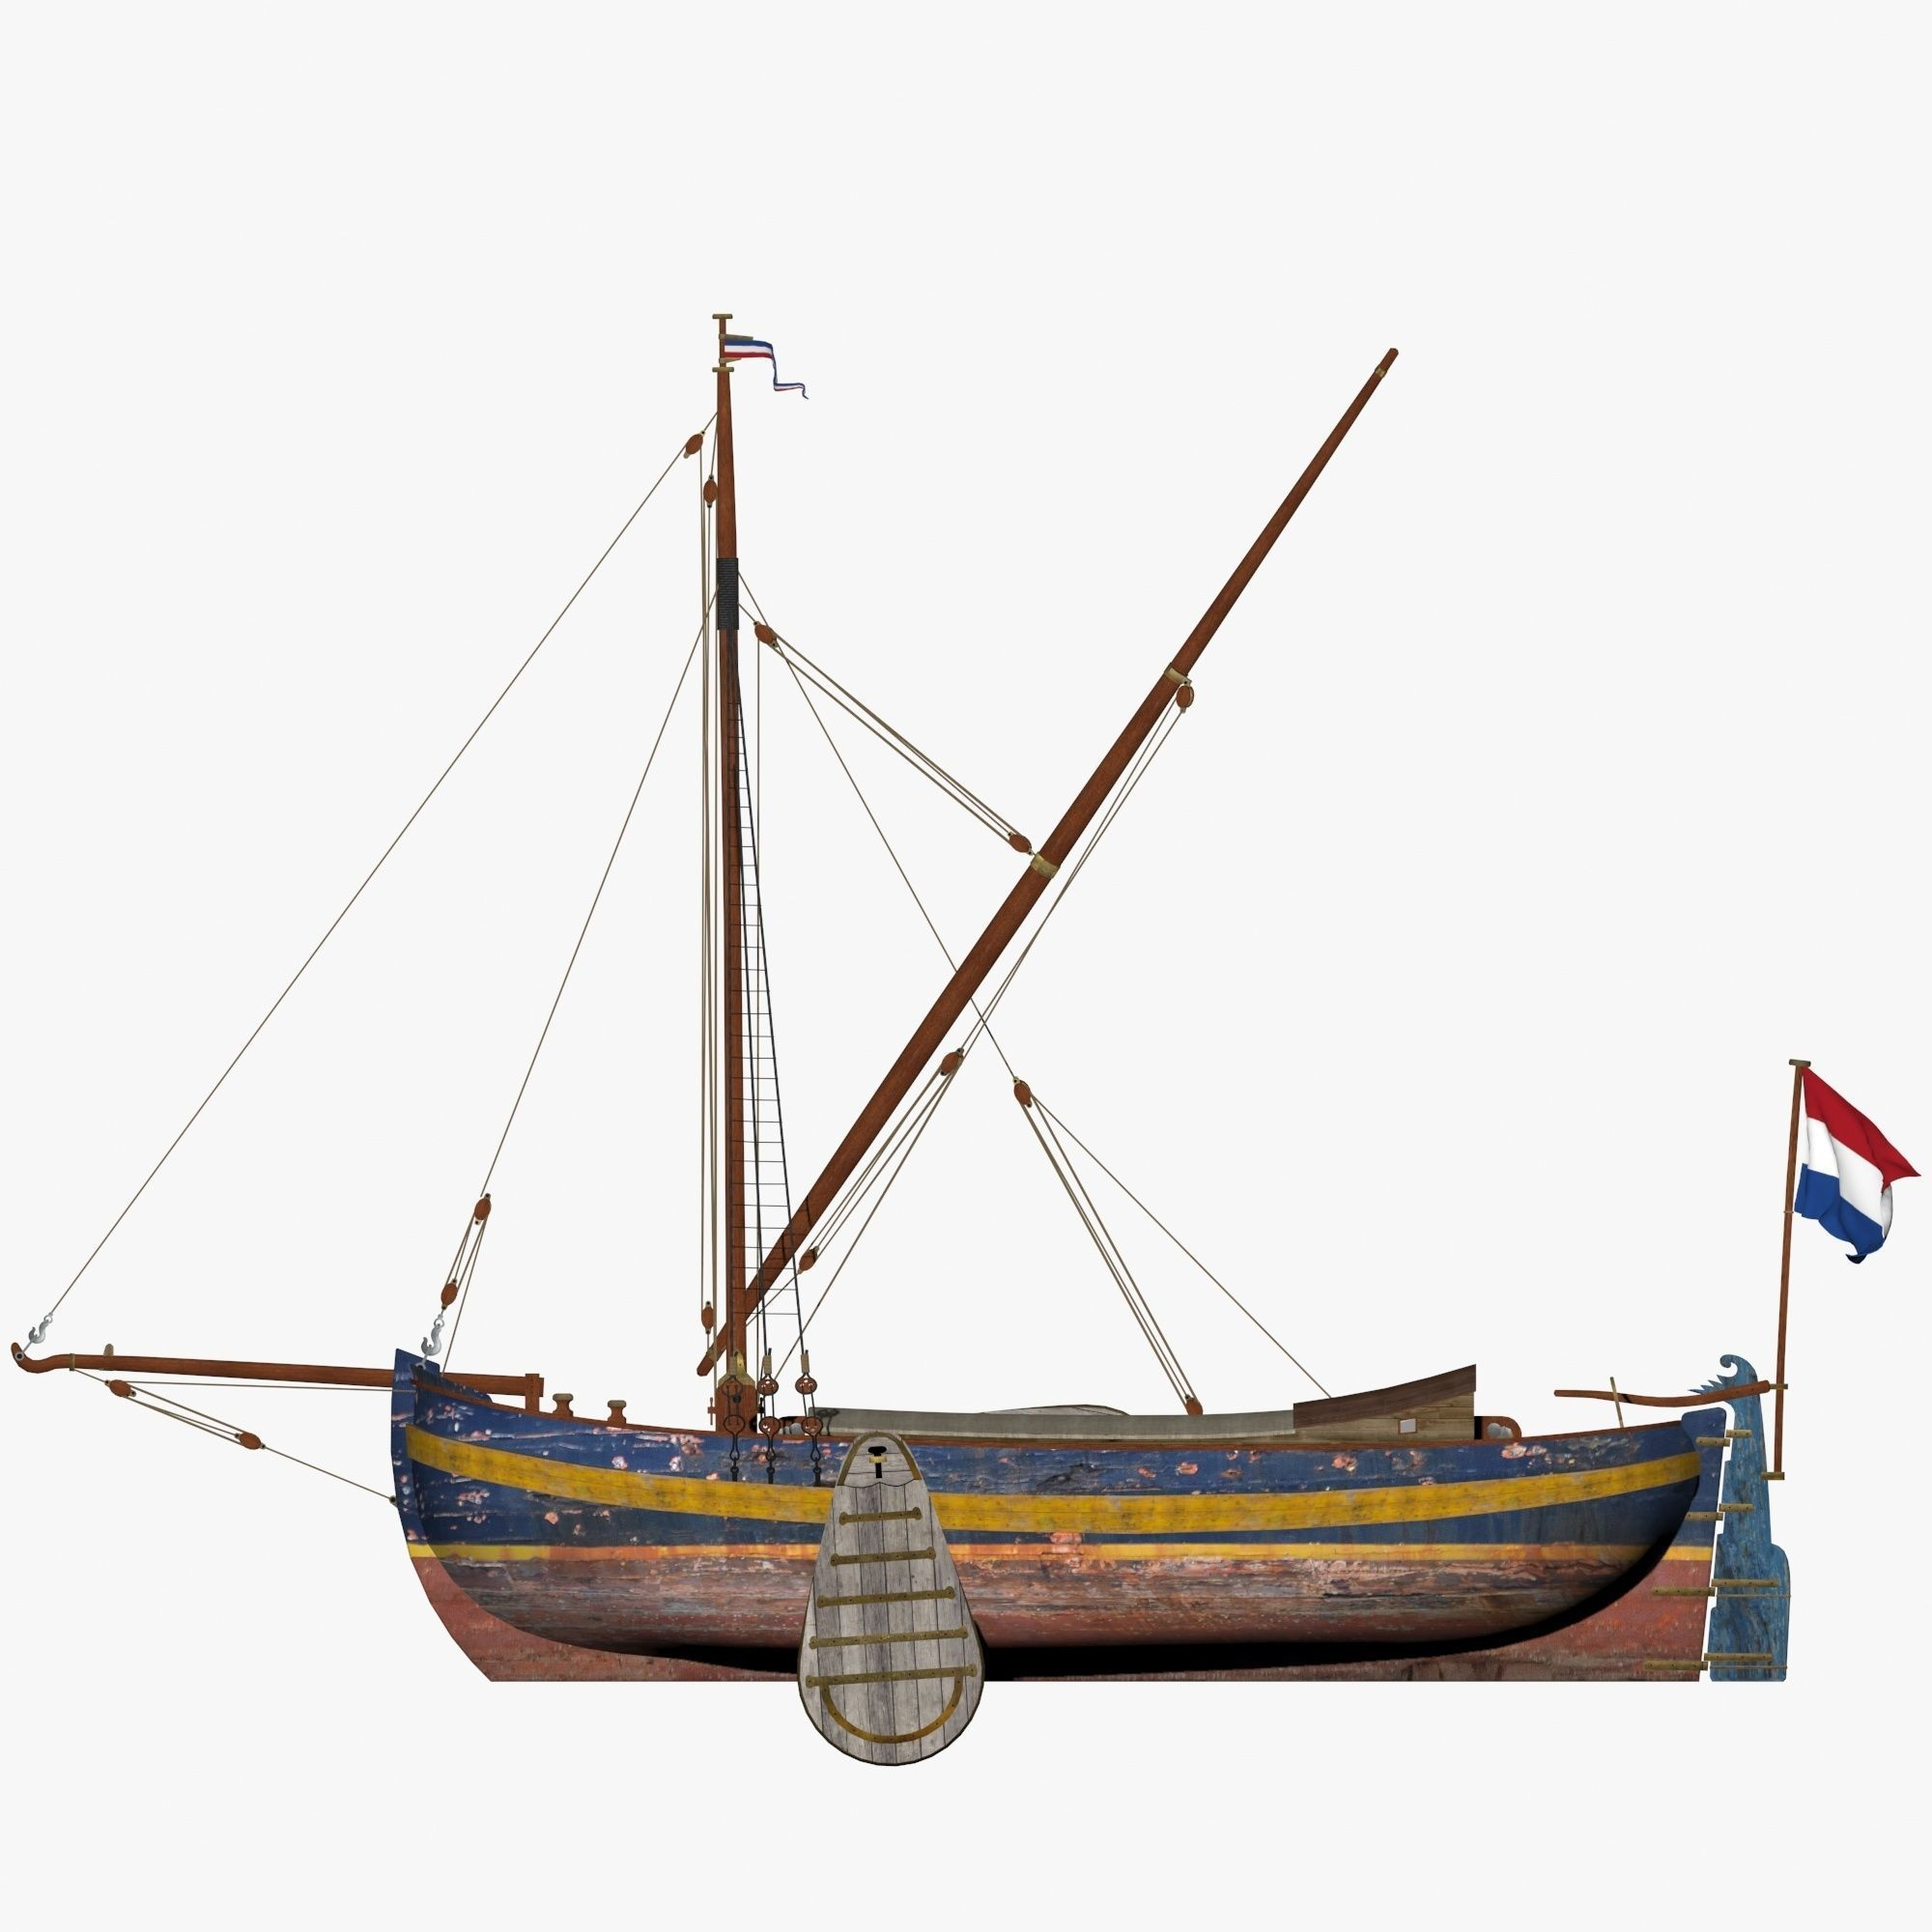 Holland Traditional Fishing Boat - Yate Hollander